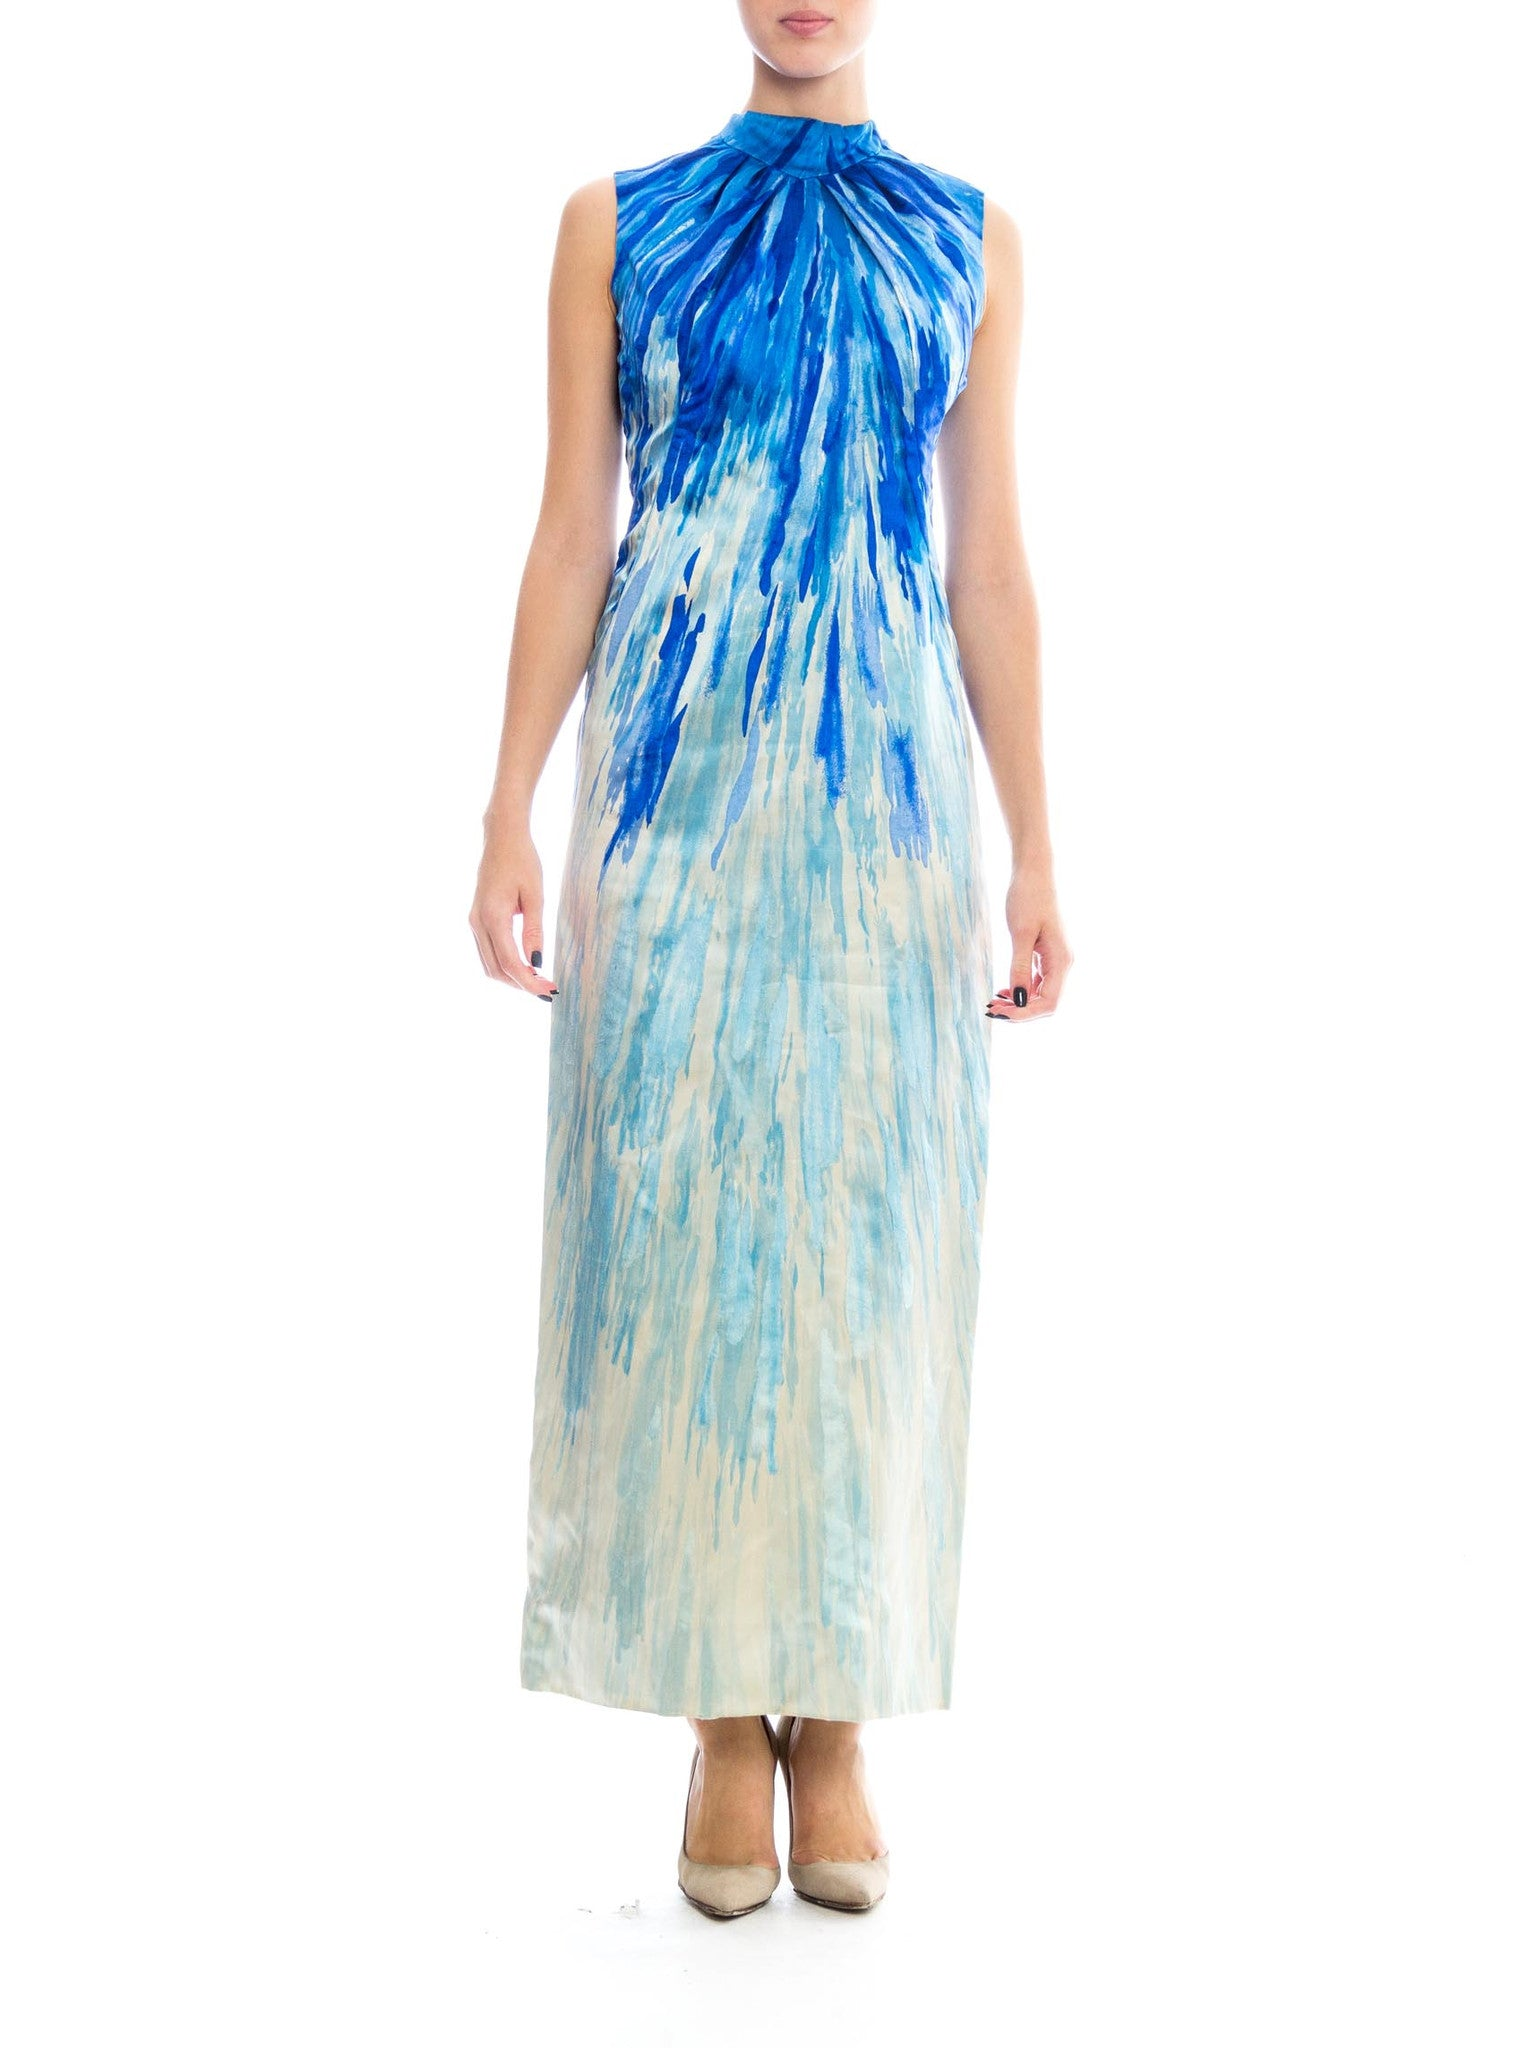 1960s Mod Watercolor Abstract Print Gown